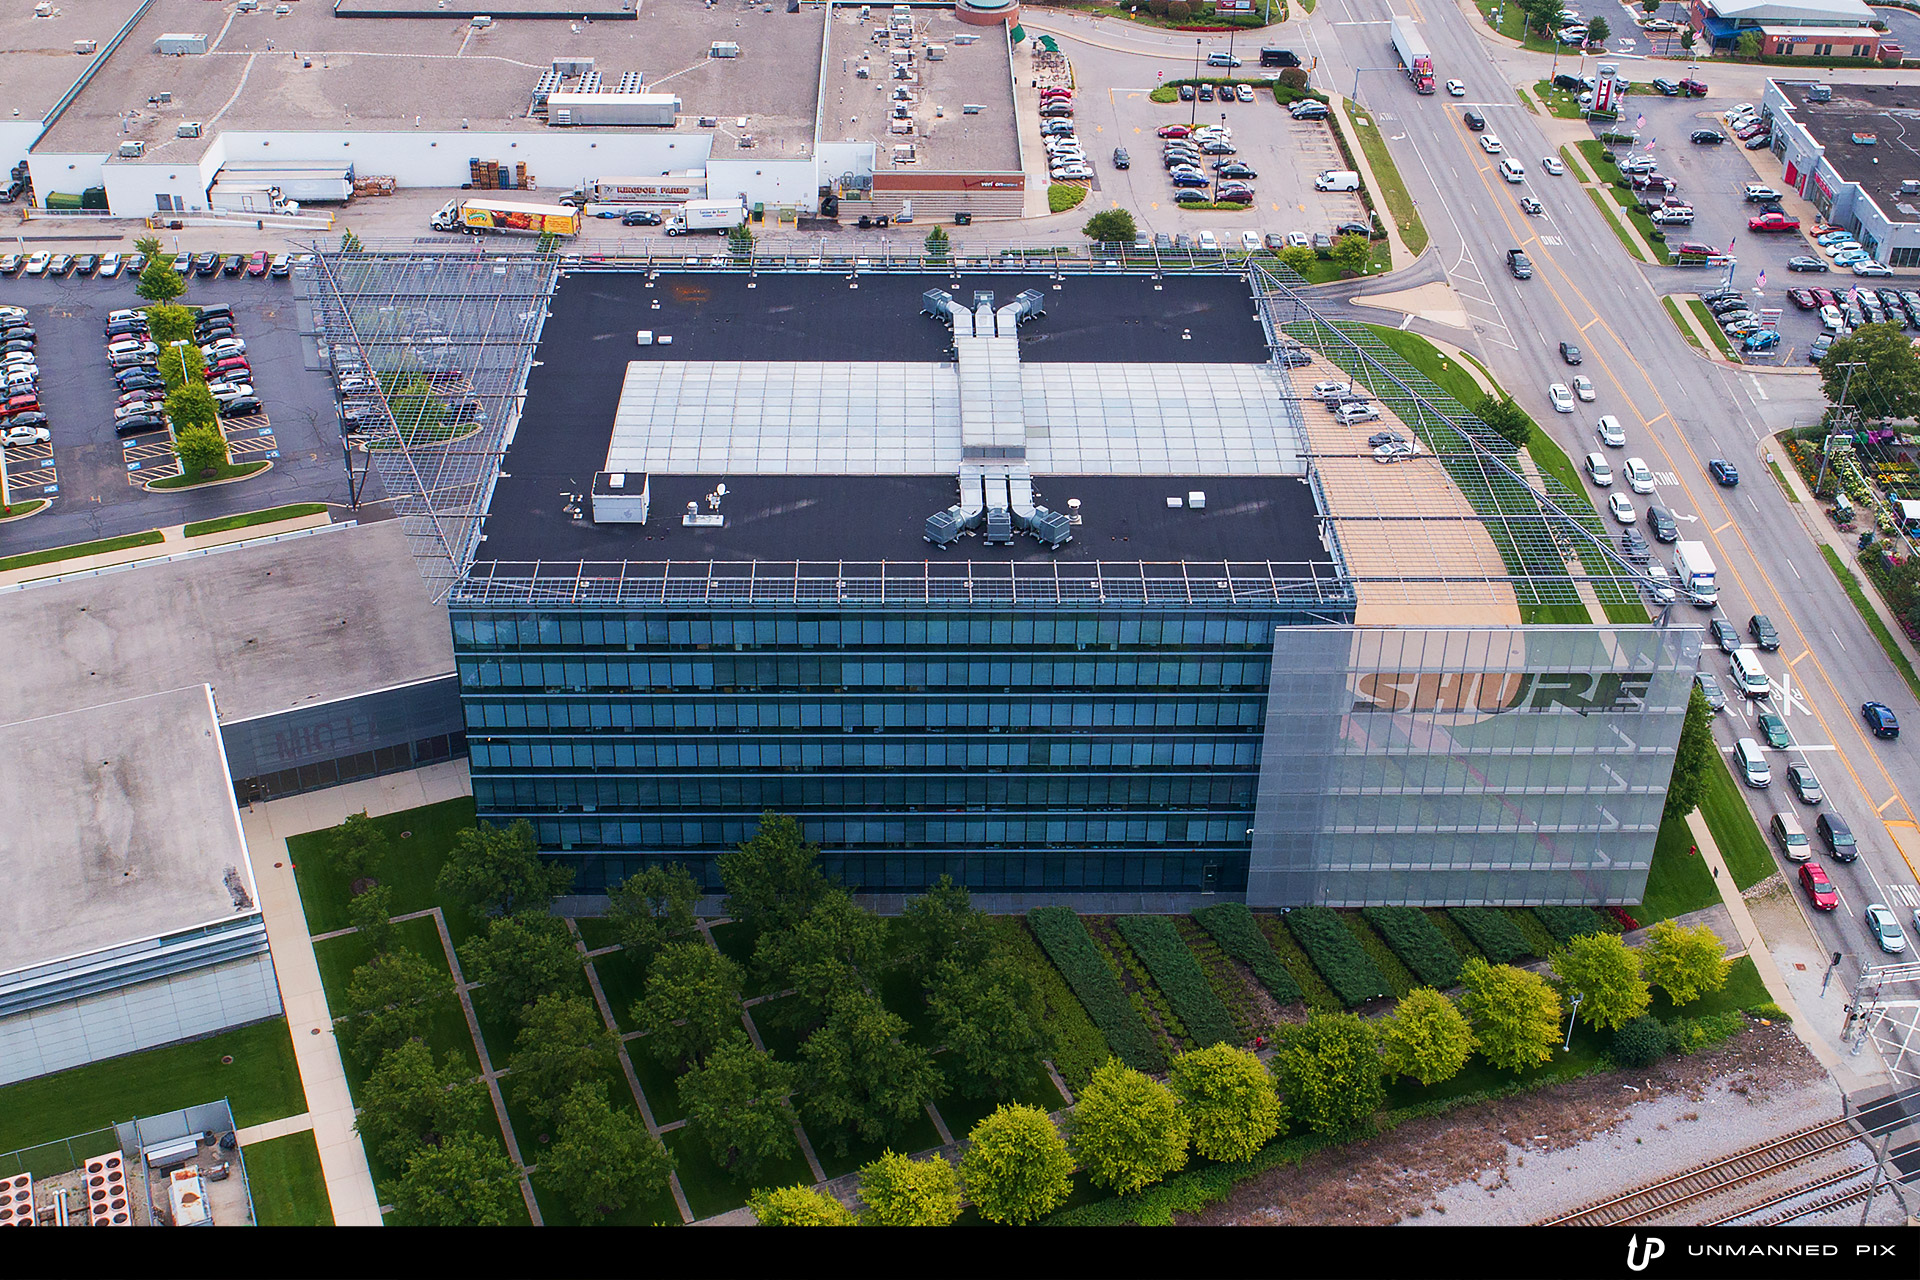 aerial view of Shure building, facing east, photographed by jacob rosenfeld with unmannedpix.com